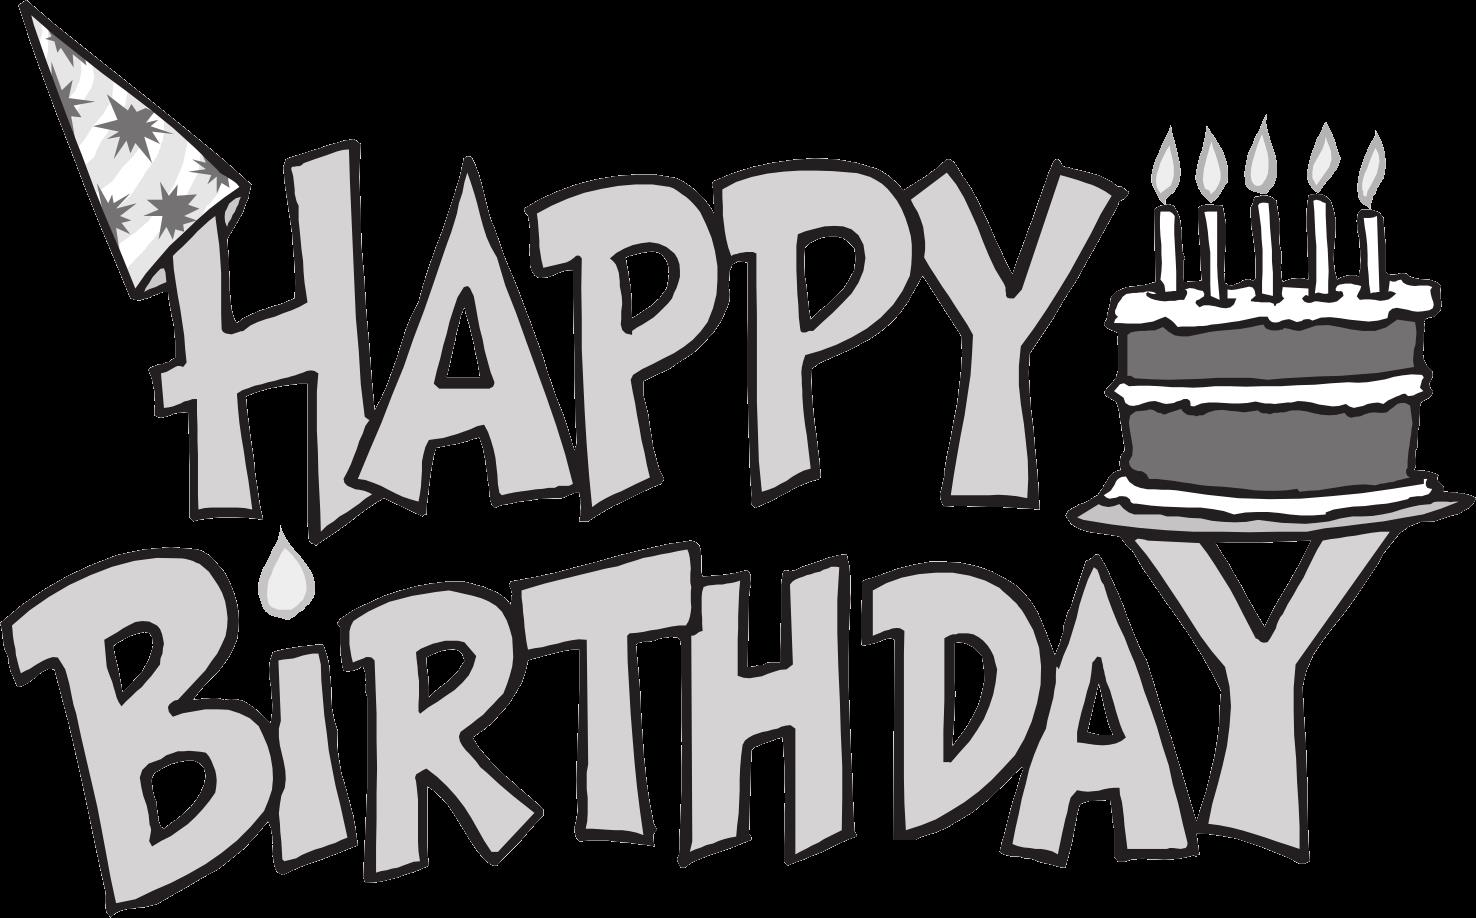 happy birthday sign black and white ; 1936433fde5e4a64bbc119a42be9b437_happy-birthday-clipart-free-black-and-white-clipartxtras-happy-birthday-banner-clipart-black-and-white_1476-918